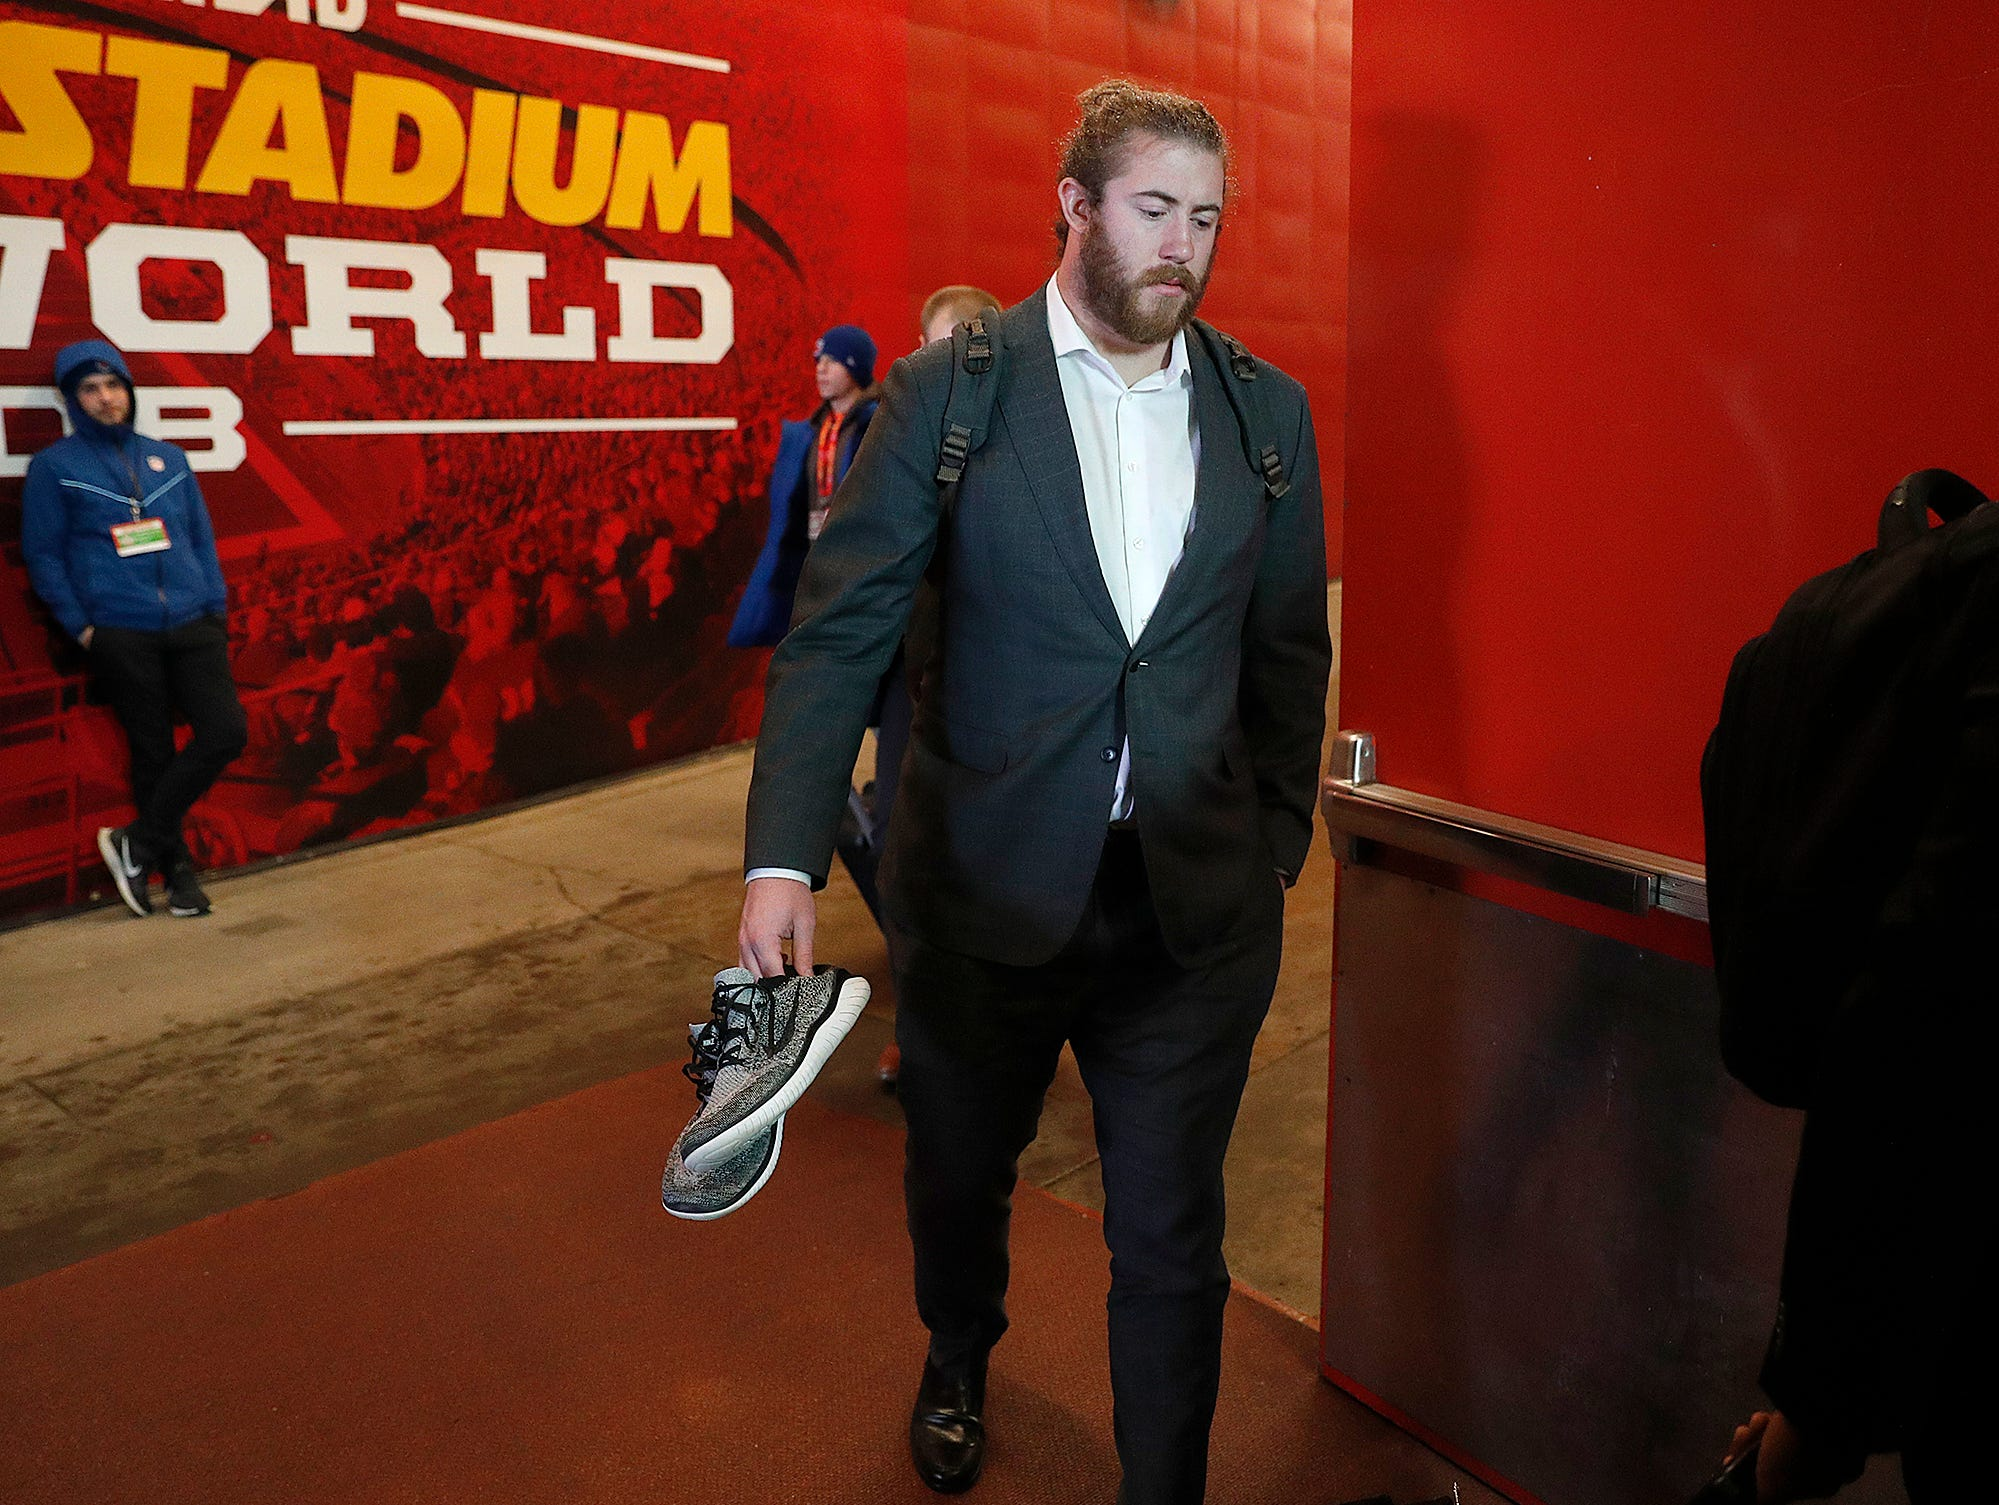 Indianapolis Colts offensive tackle Joe Haeg (73) and the Indianapolis Colts arrive for their game against the Kansas City Chiefs at Arrowhead Stadium in Kansas City, MO., on Saturday, Jan. 12, 2019.